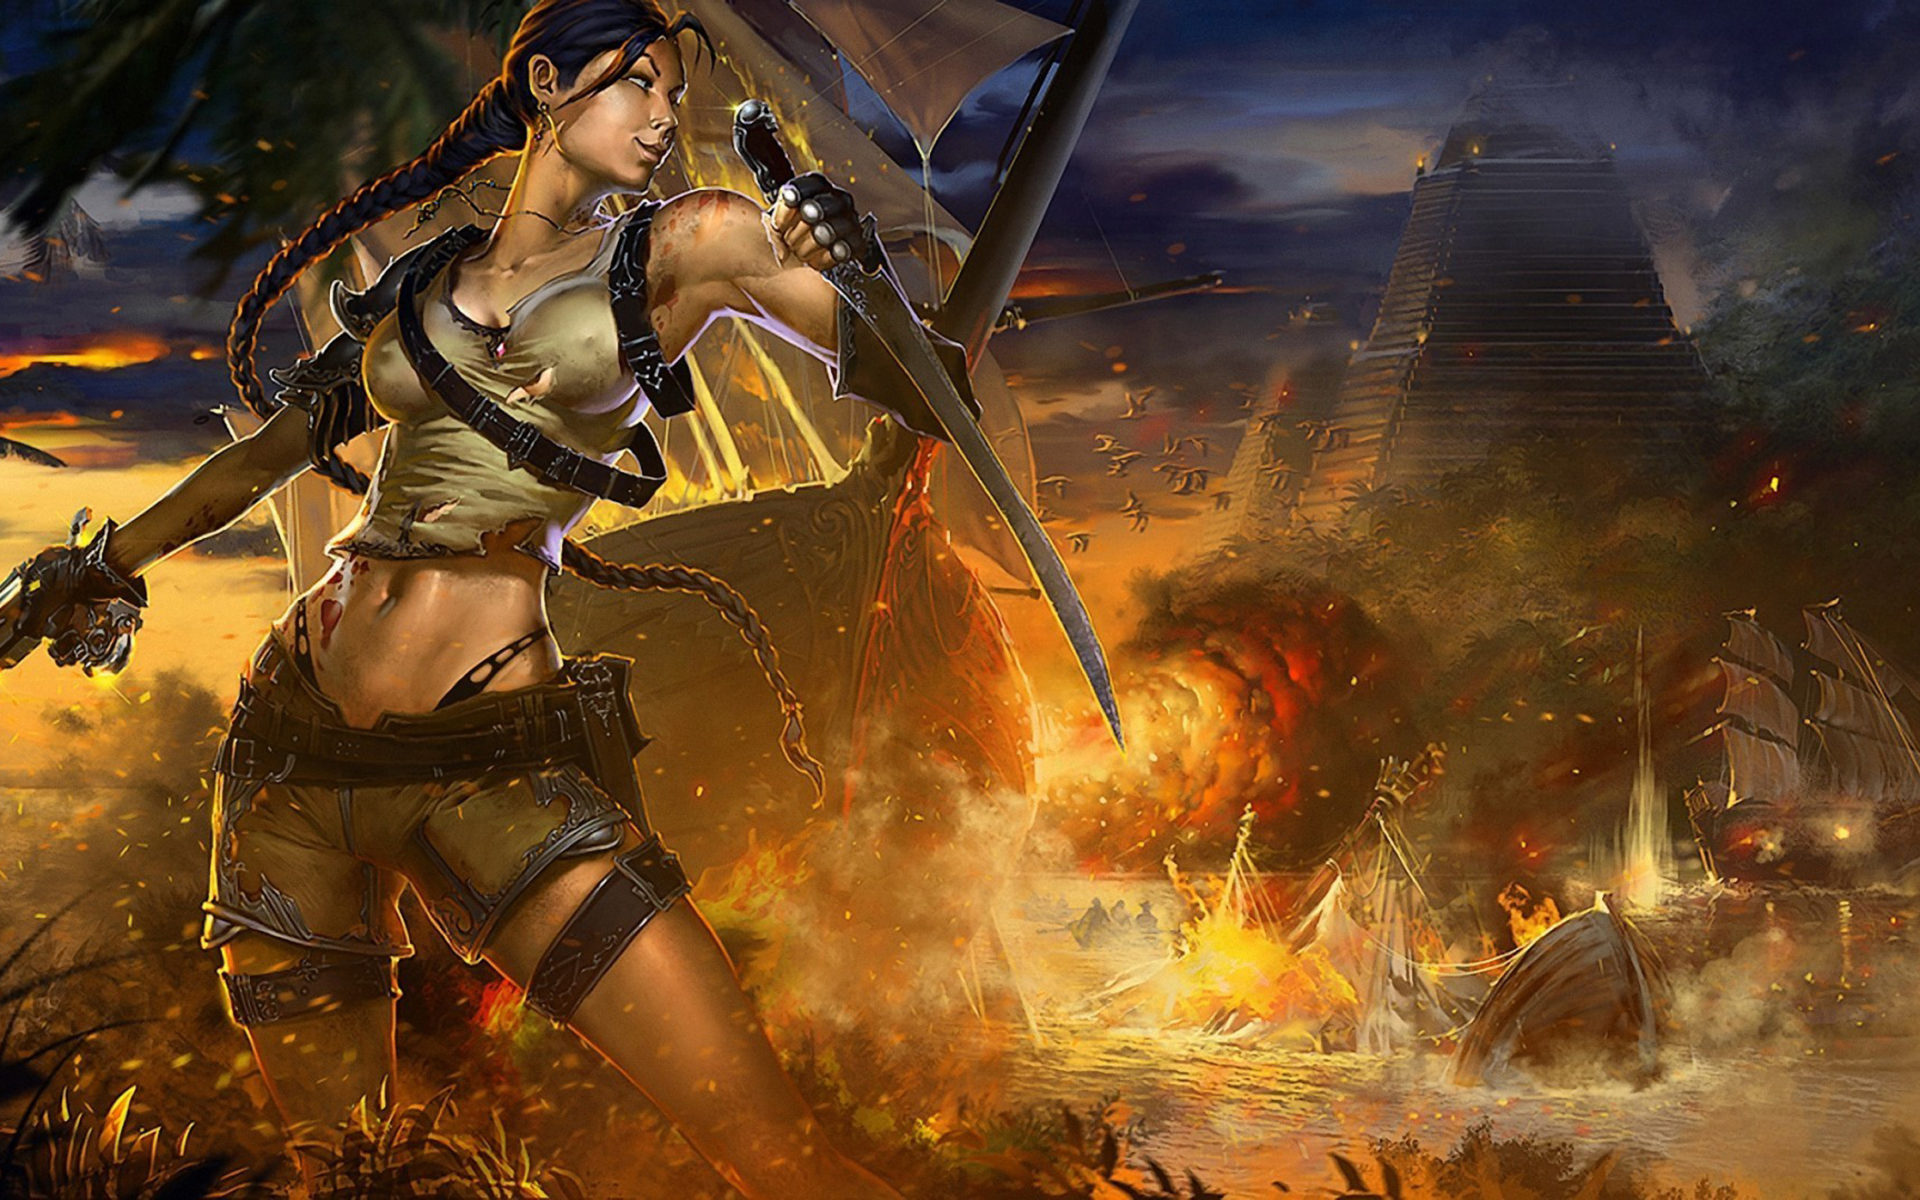 Final Fantasy Wallpaper Iphone X Warriors Fantasy Girls Tomb Raider Lara Croft Battle